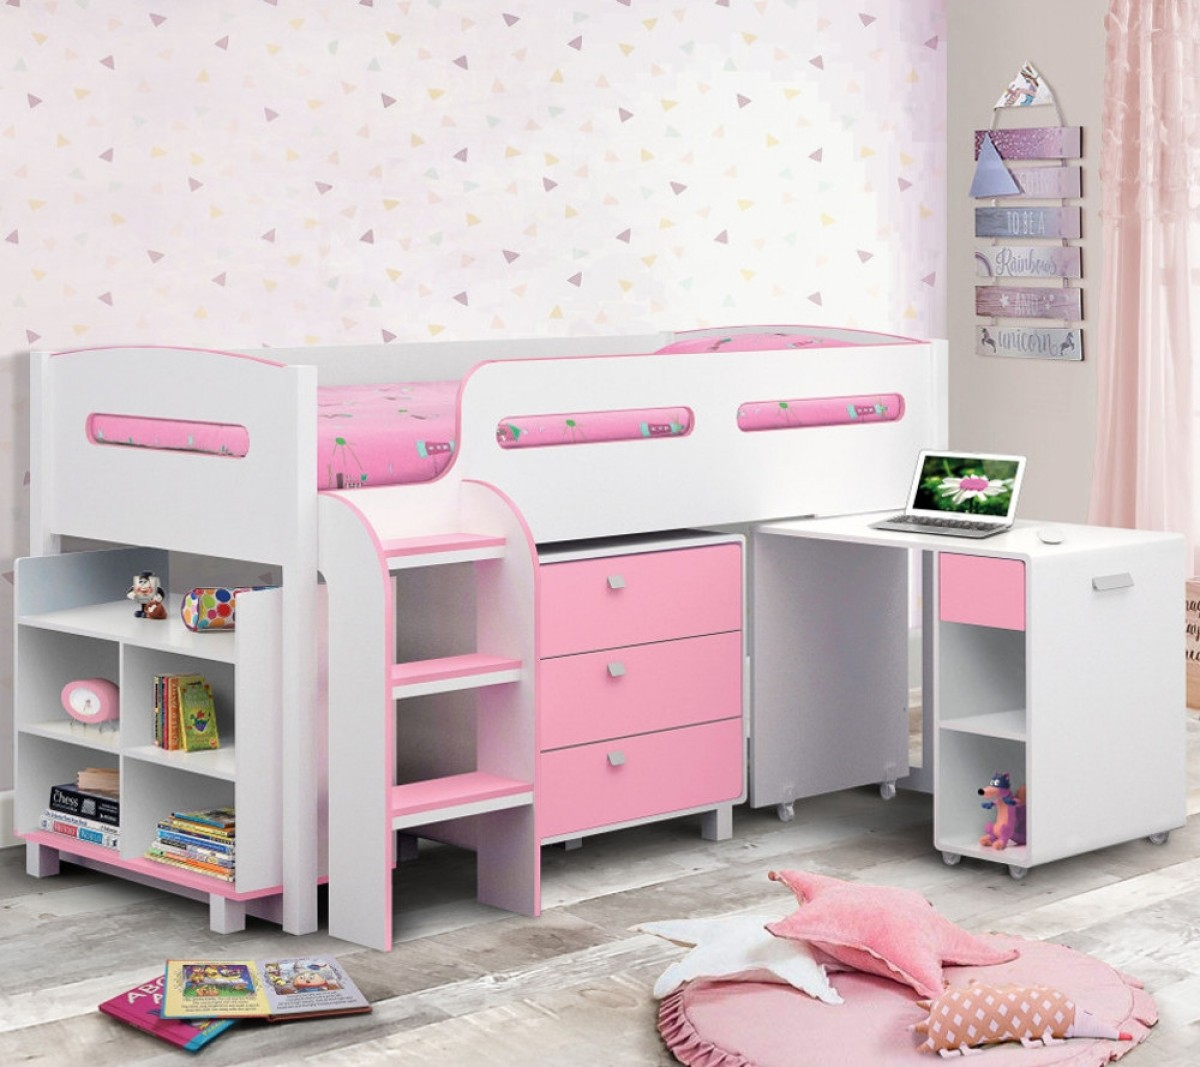 Kimbo Pink and White Mid Sleeper Cabin Bed